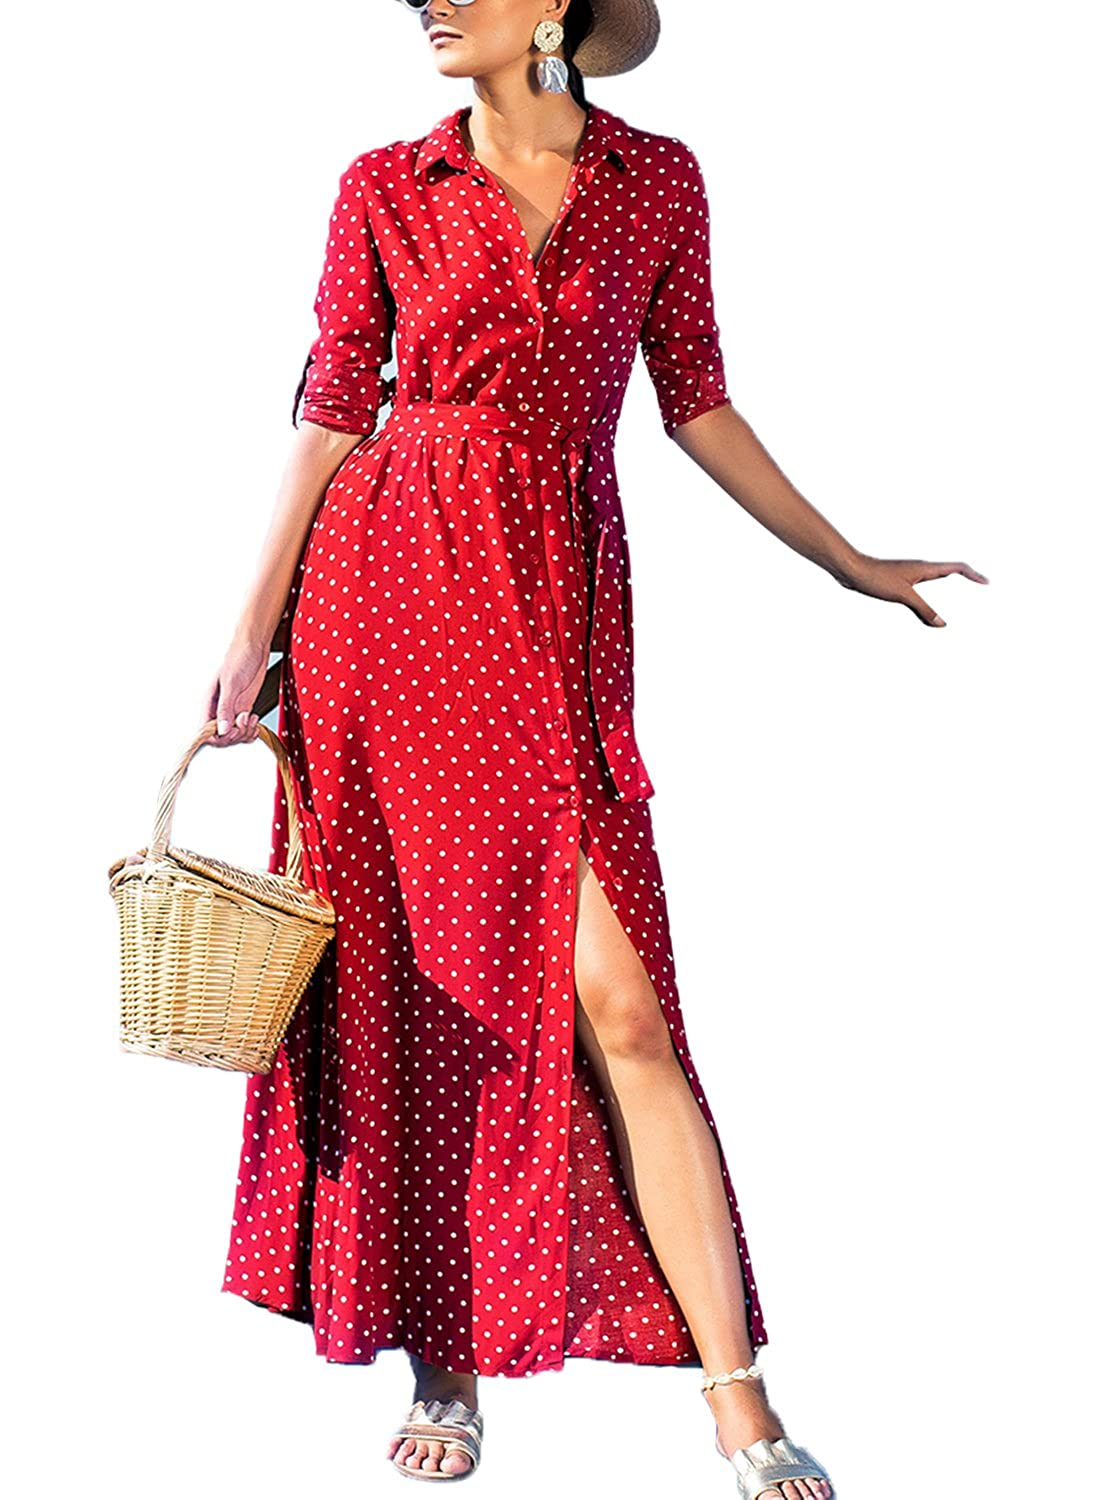 d69e802b84bd7b Asvivid Womens Casual Polka Dot Roll Up Sleeve Button Down Flowy Shirt Maxi  Dress with Pockets